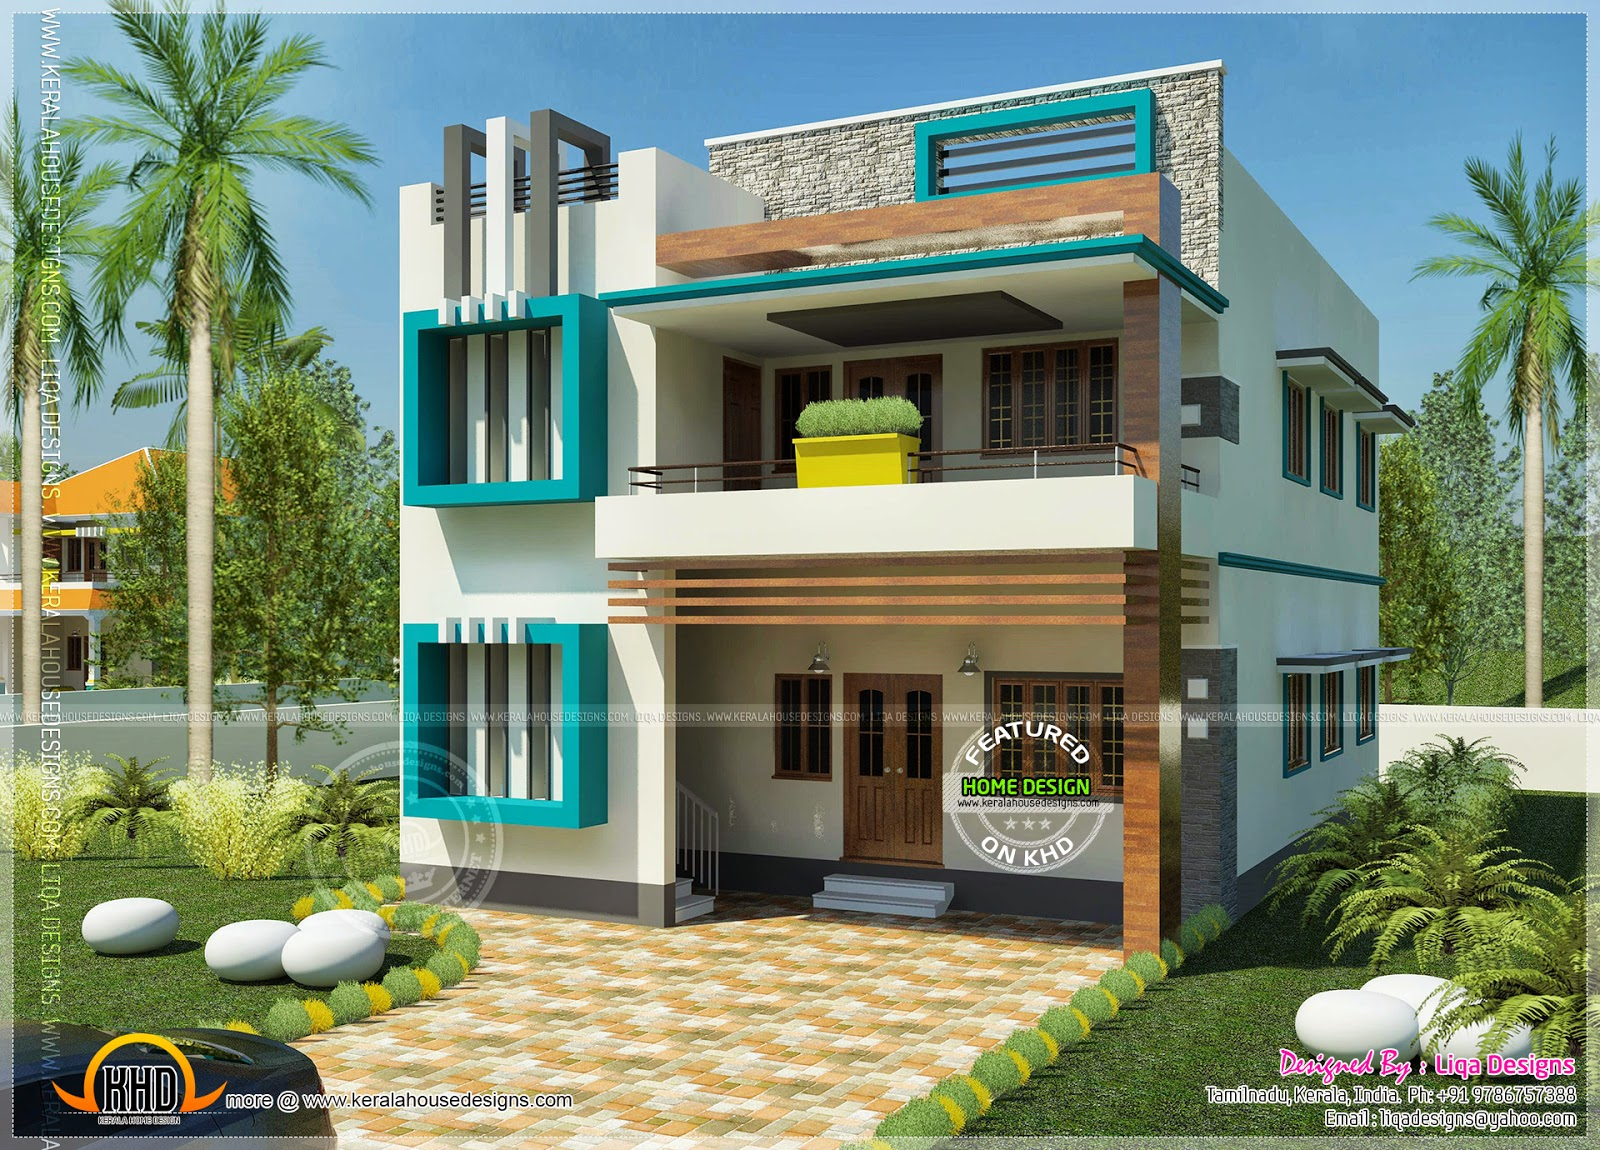 South indian contemporary home kerala home design and for Indian house designs and floor plans